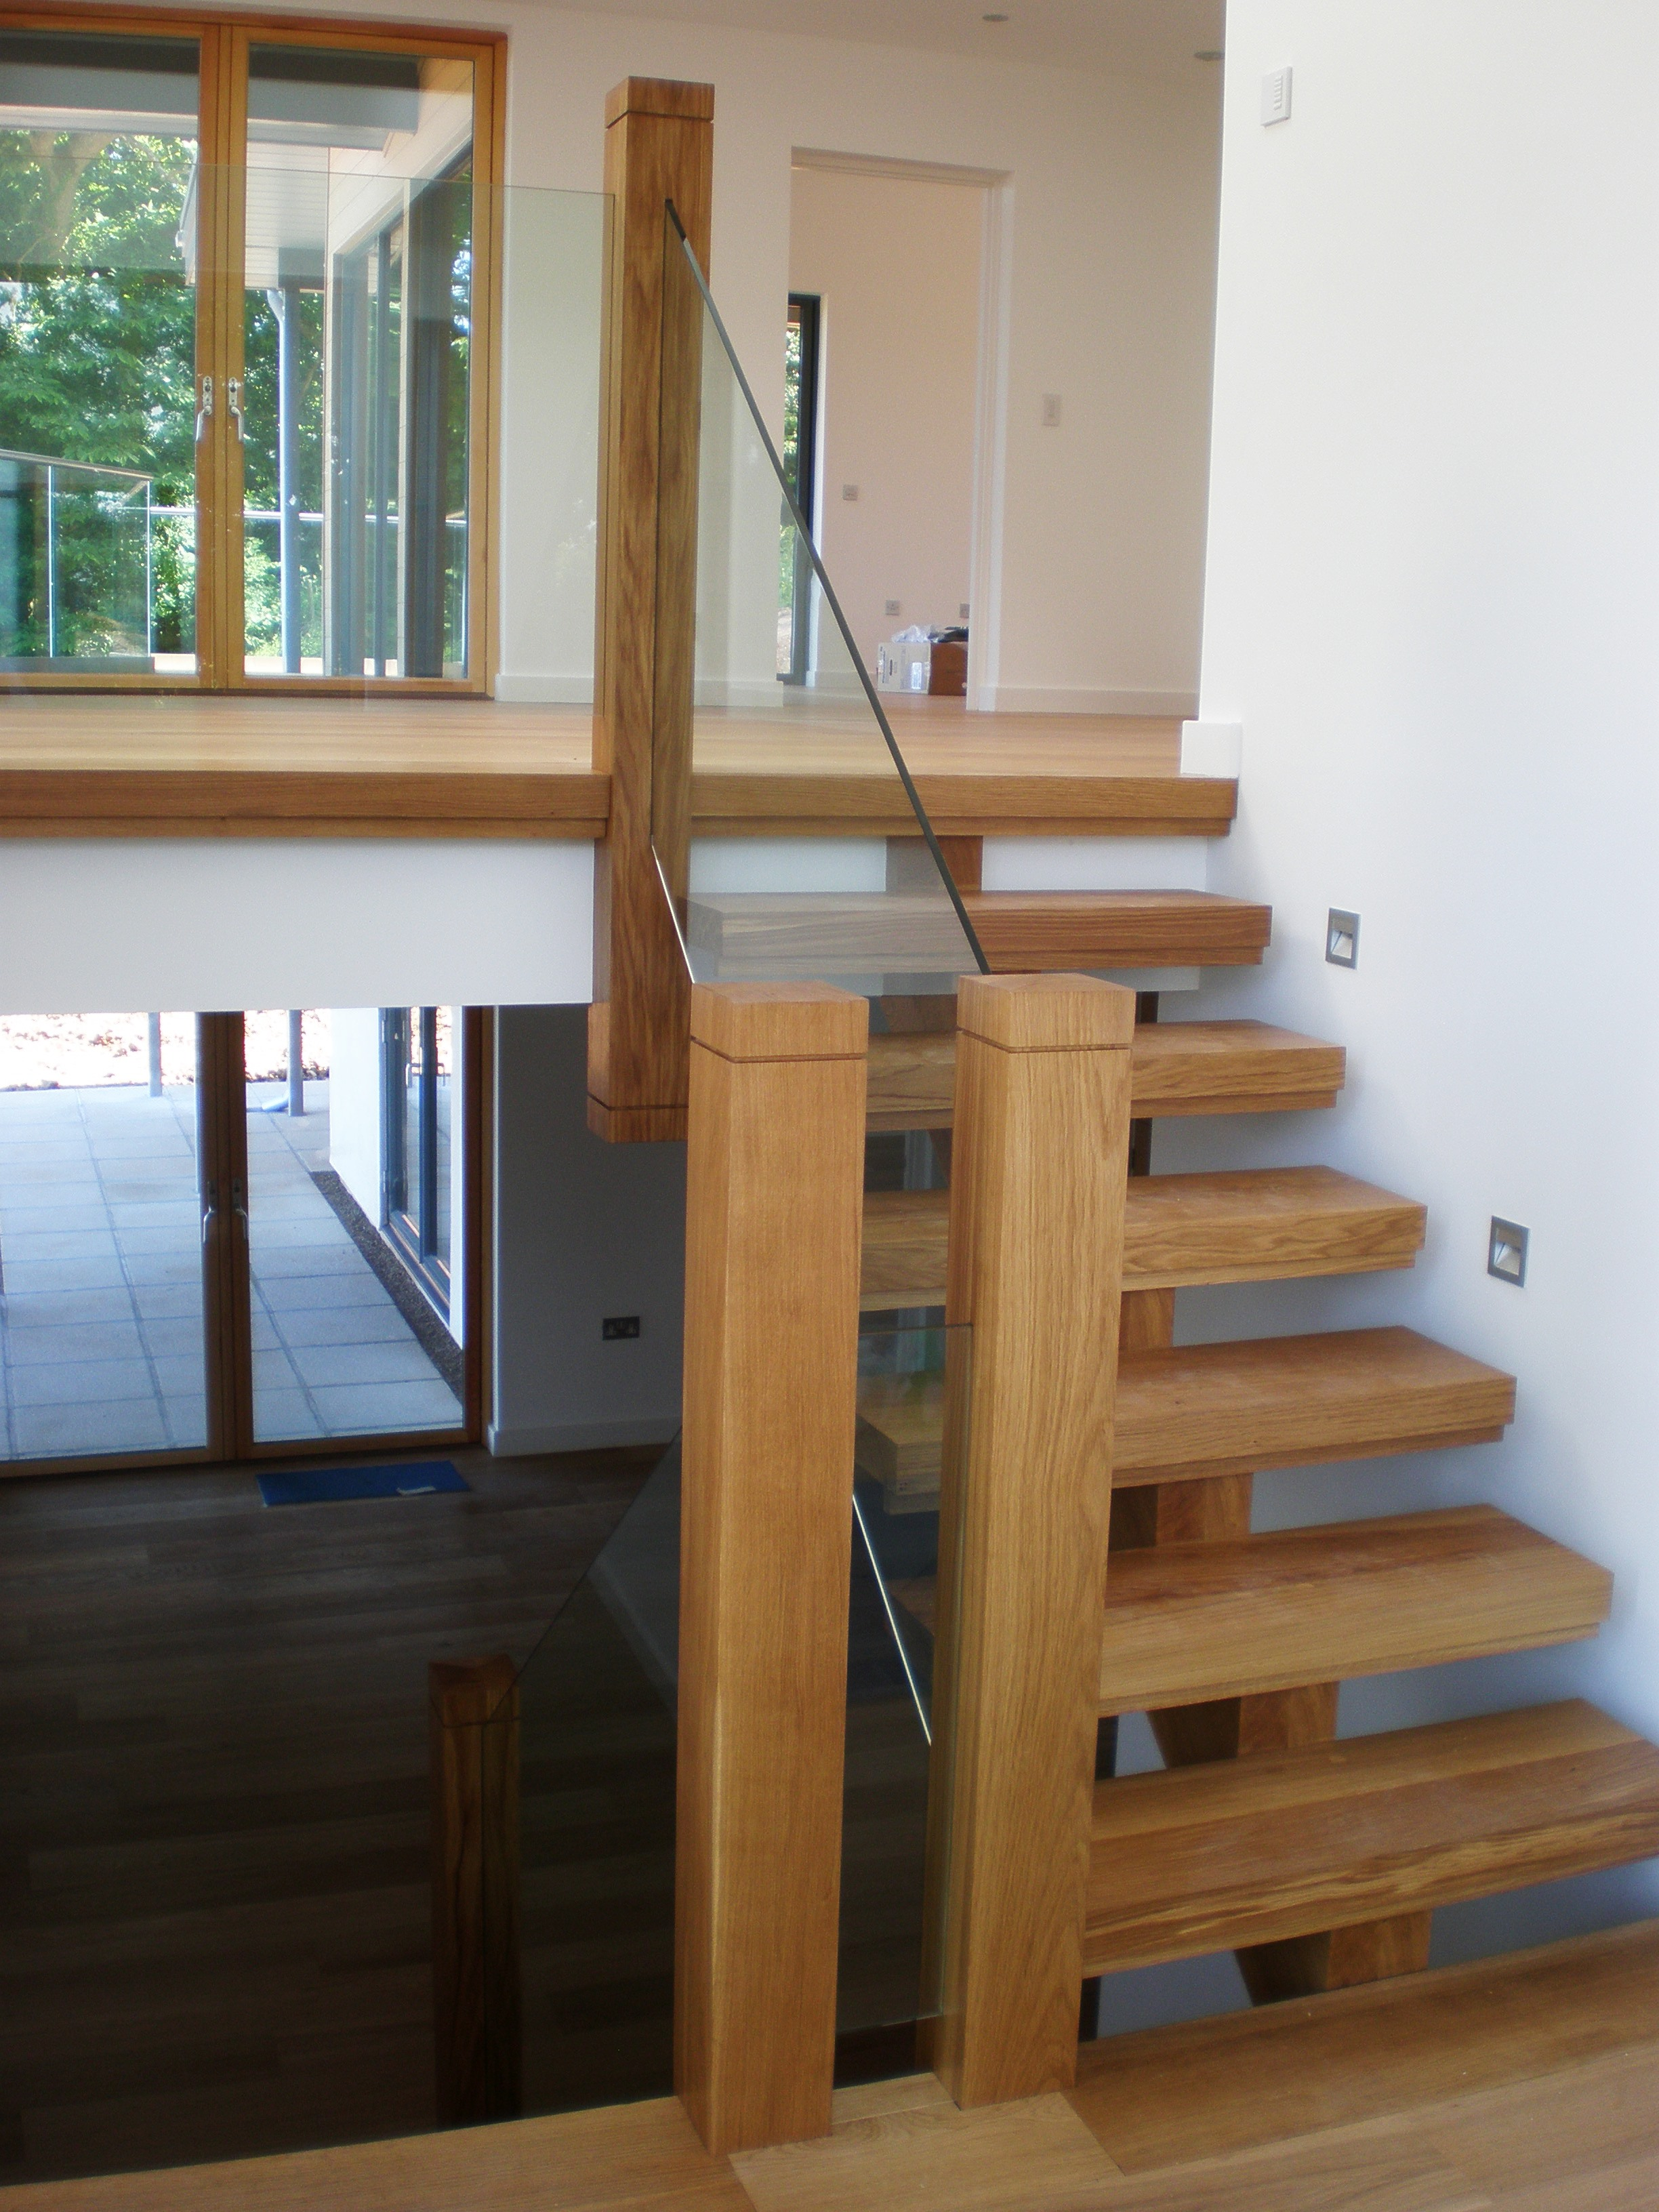 Interior design features included the staircase